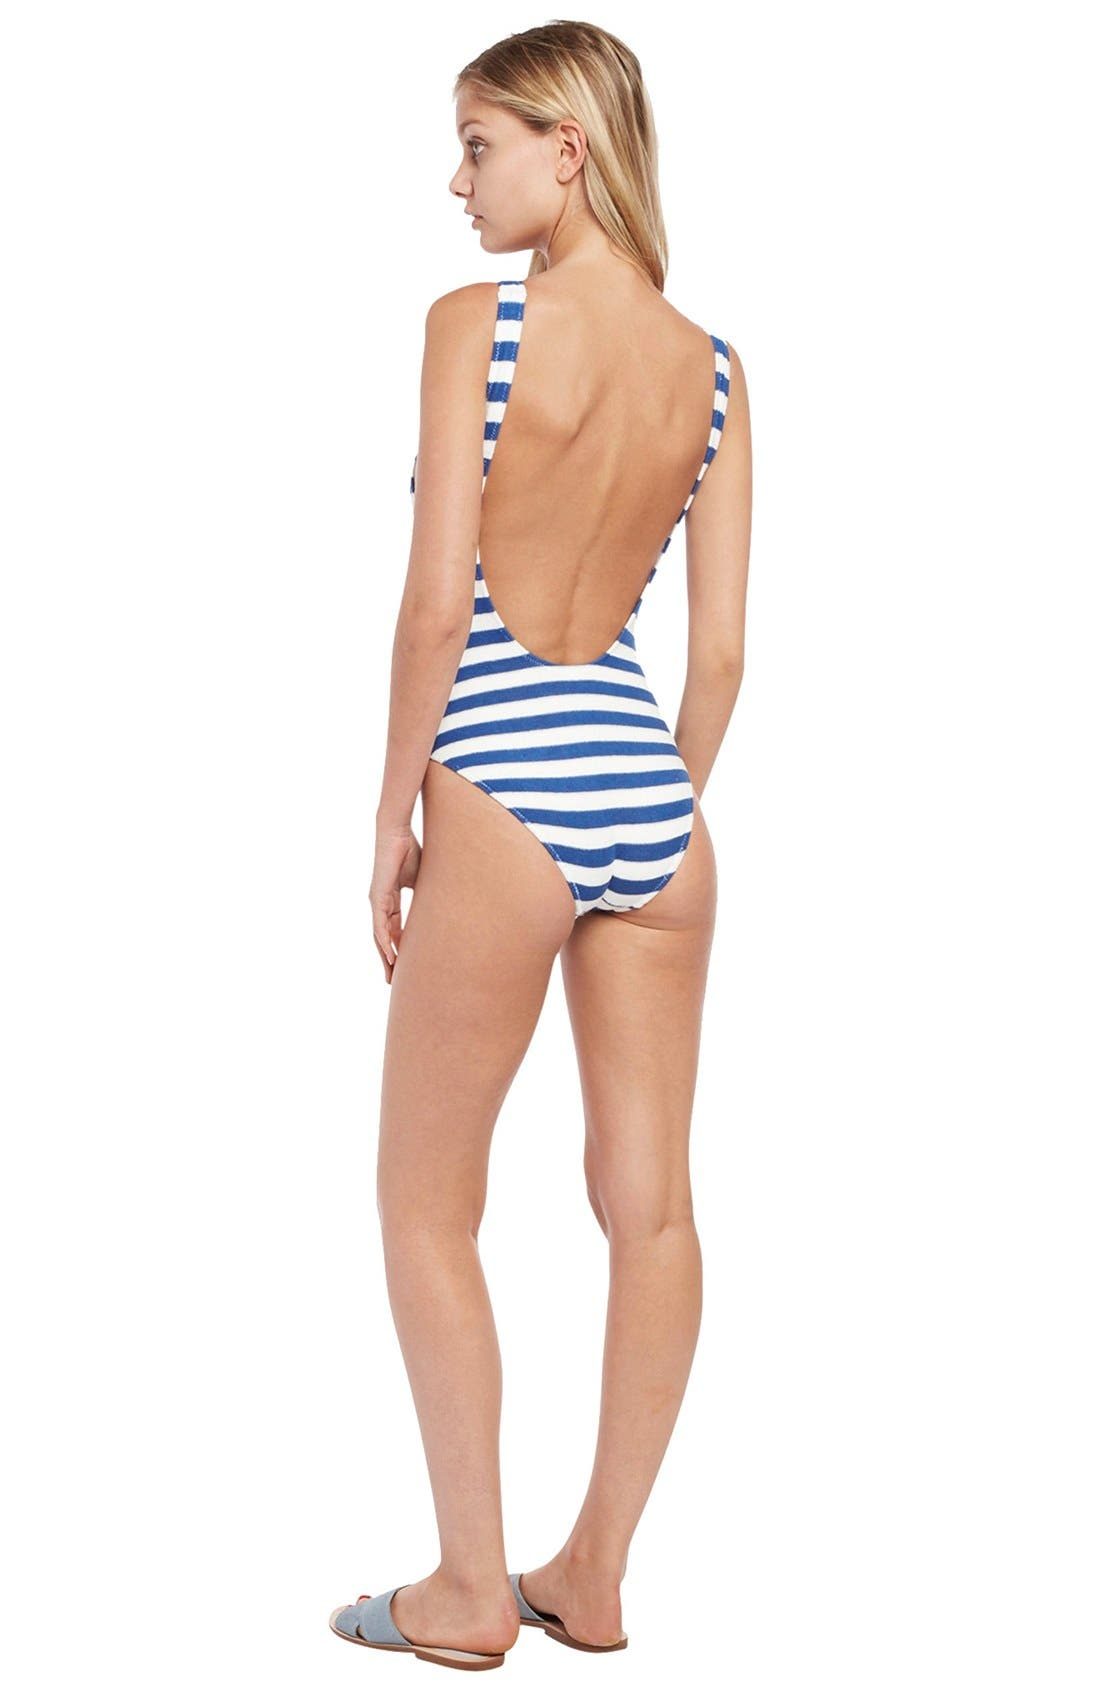 'The Anne-Marie' Scoop Back One-Piece Swimsuit,                             Alternate thumbnail 4, color,                             400